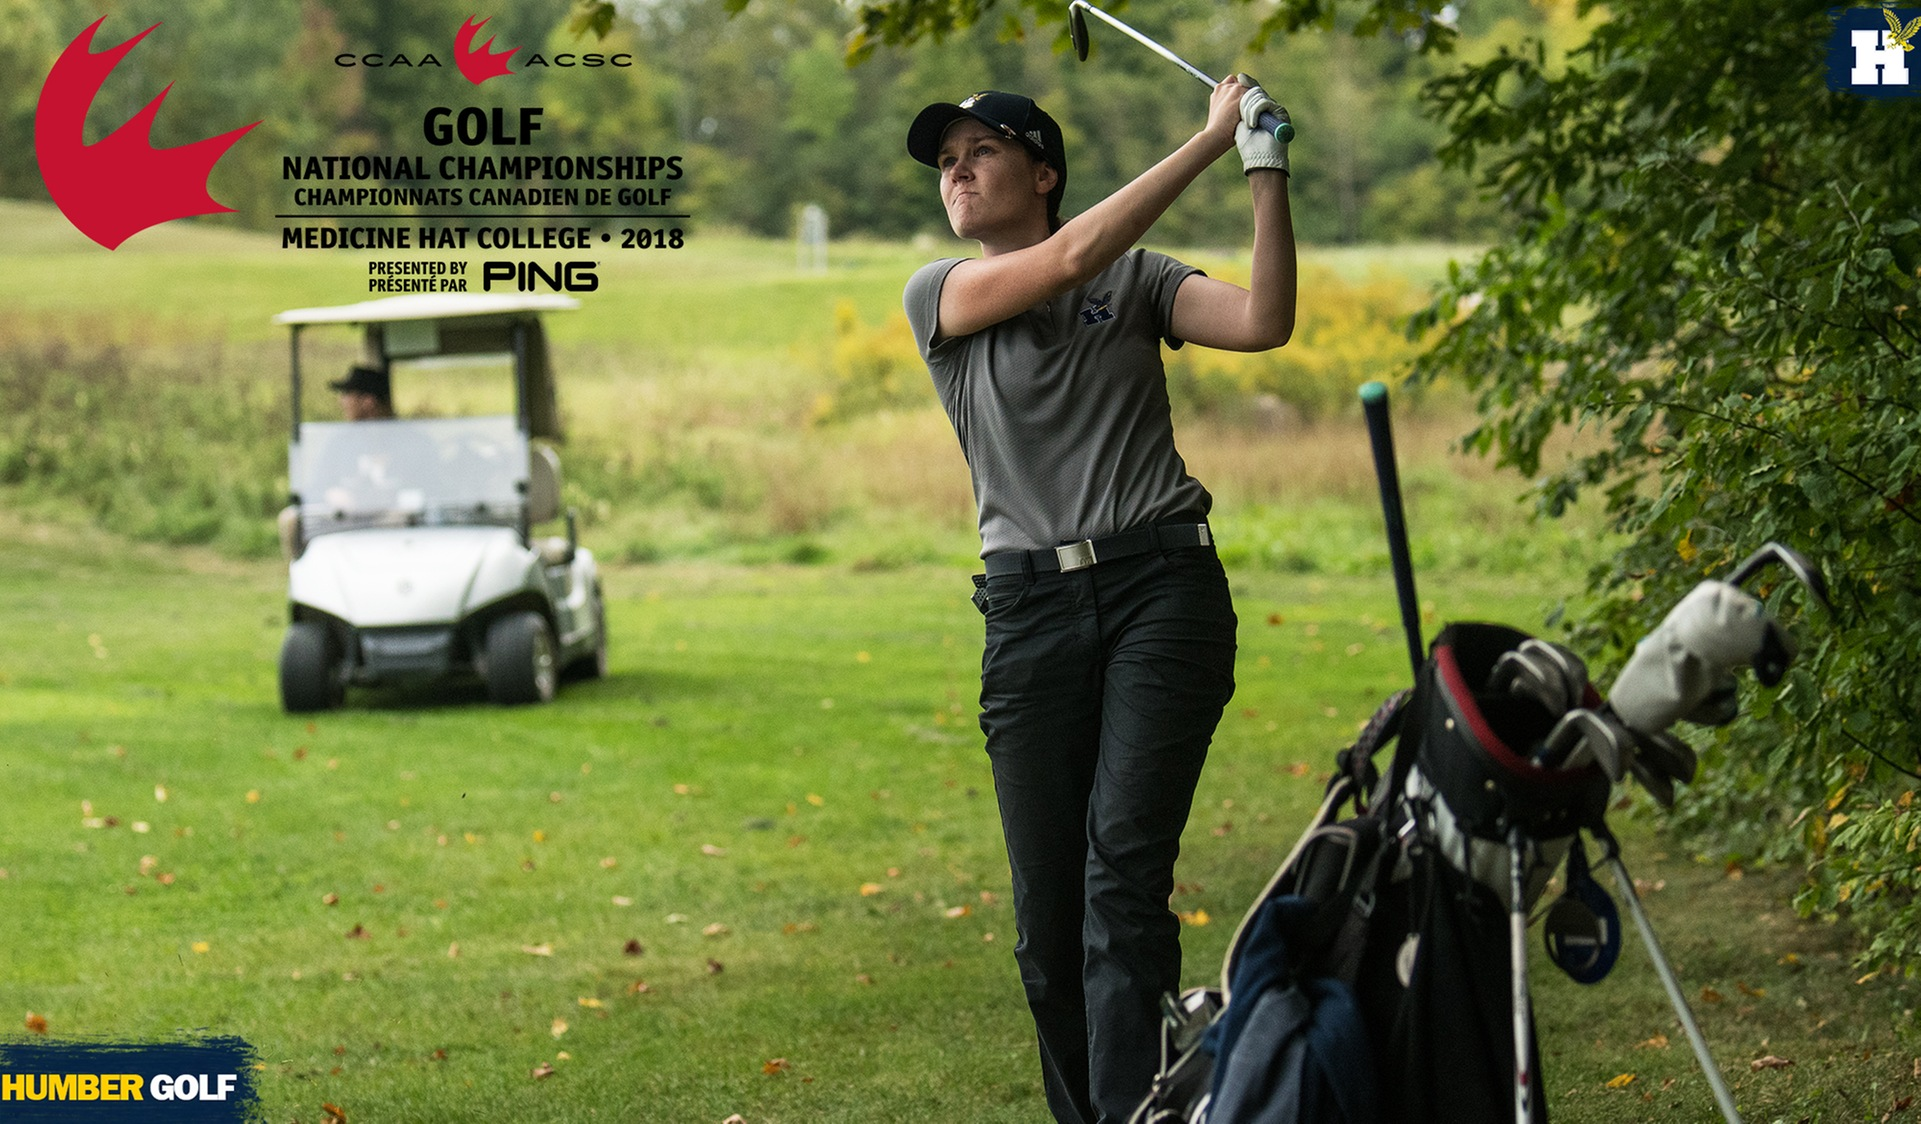 No. 7 WOMEN'S GOLF TO TAKE ON THE CCAA AT THE CHAMPIONSHIP